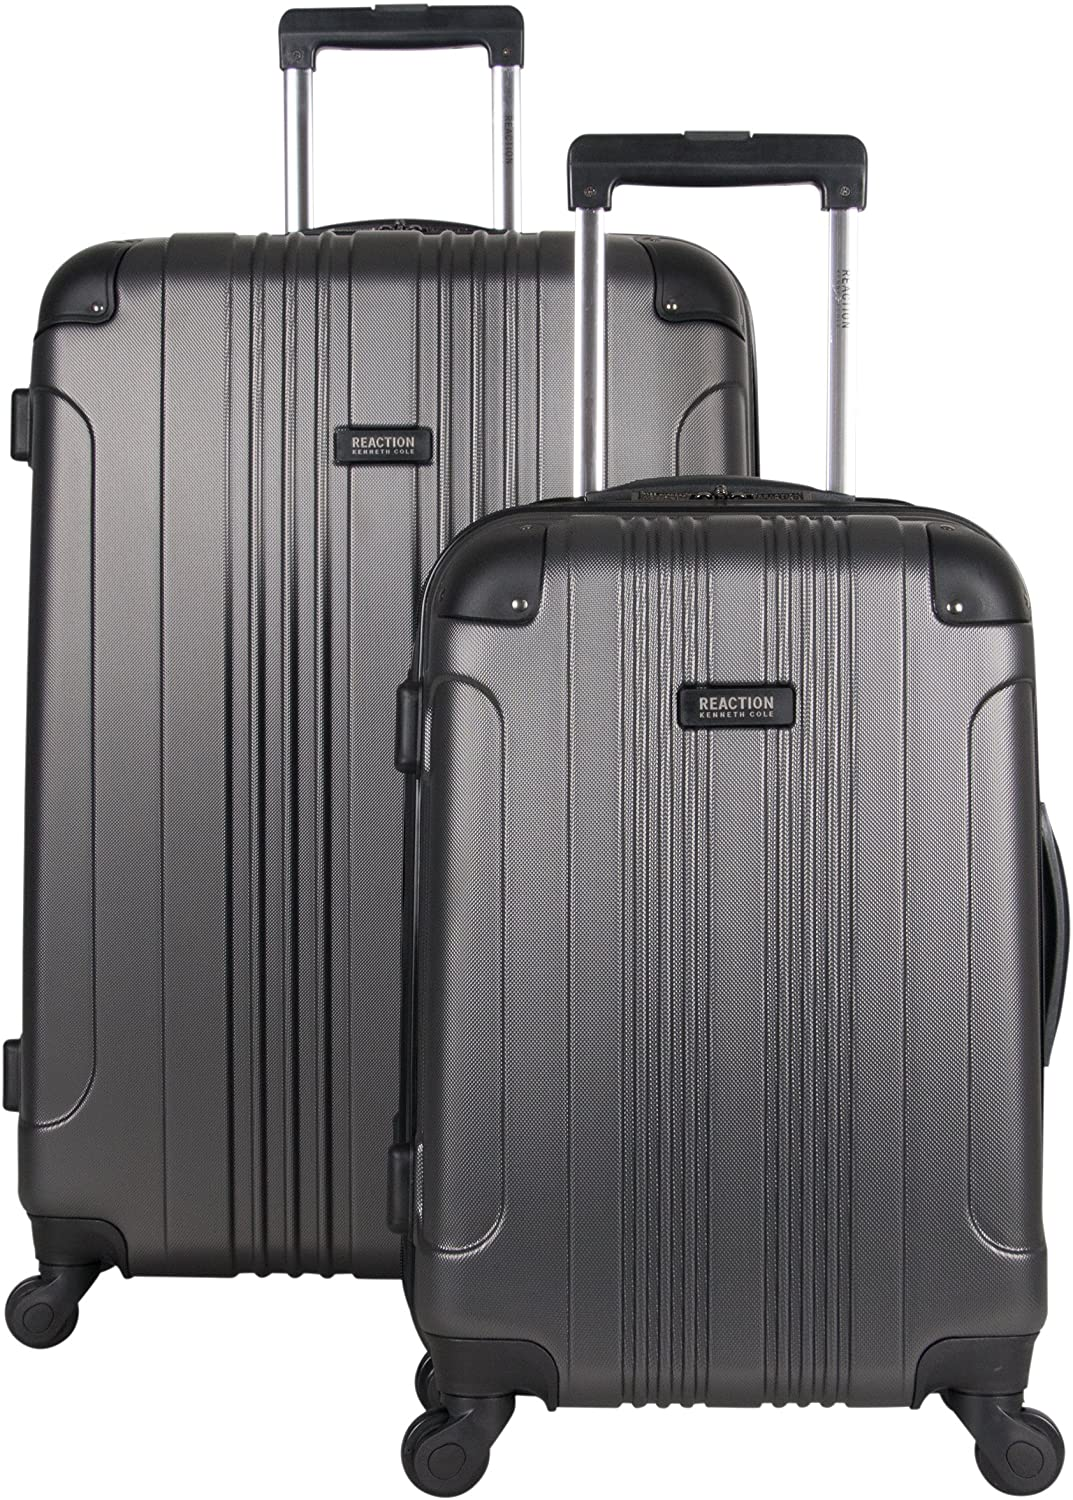 Kenneth Cole Reaction Spasm price Out Japan Maker New Of Hardside 2-Piece Bounds Lightweight